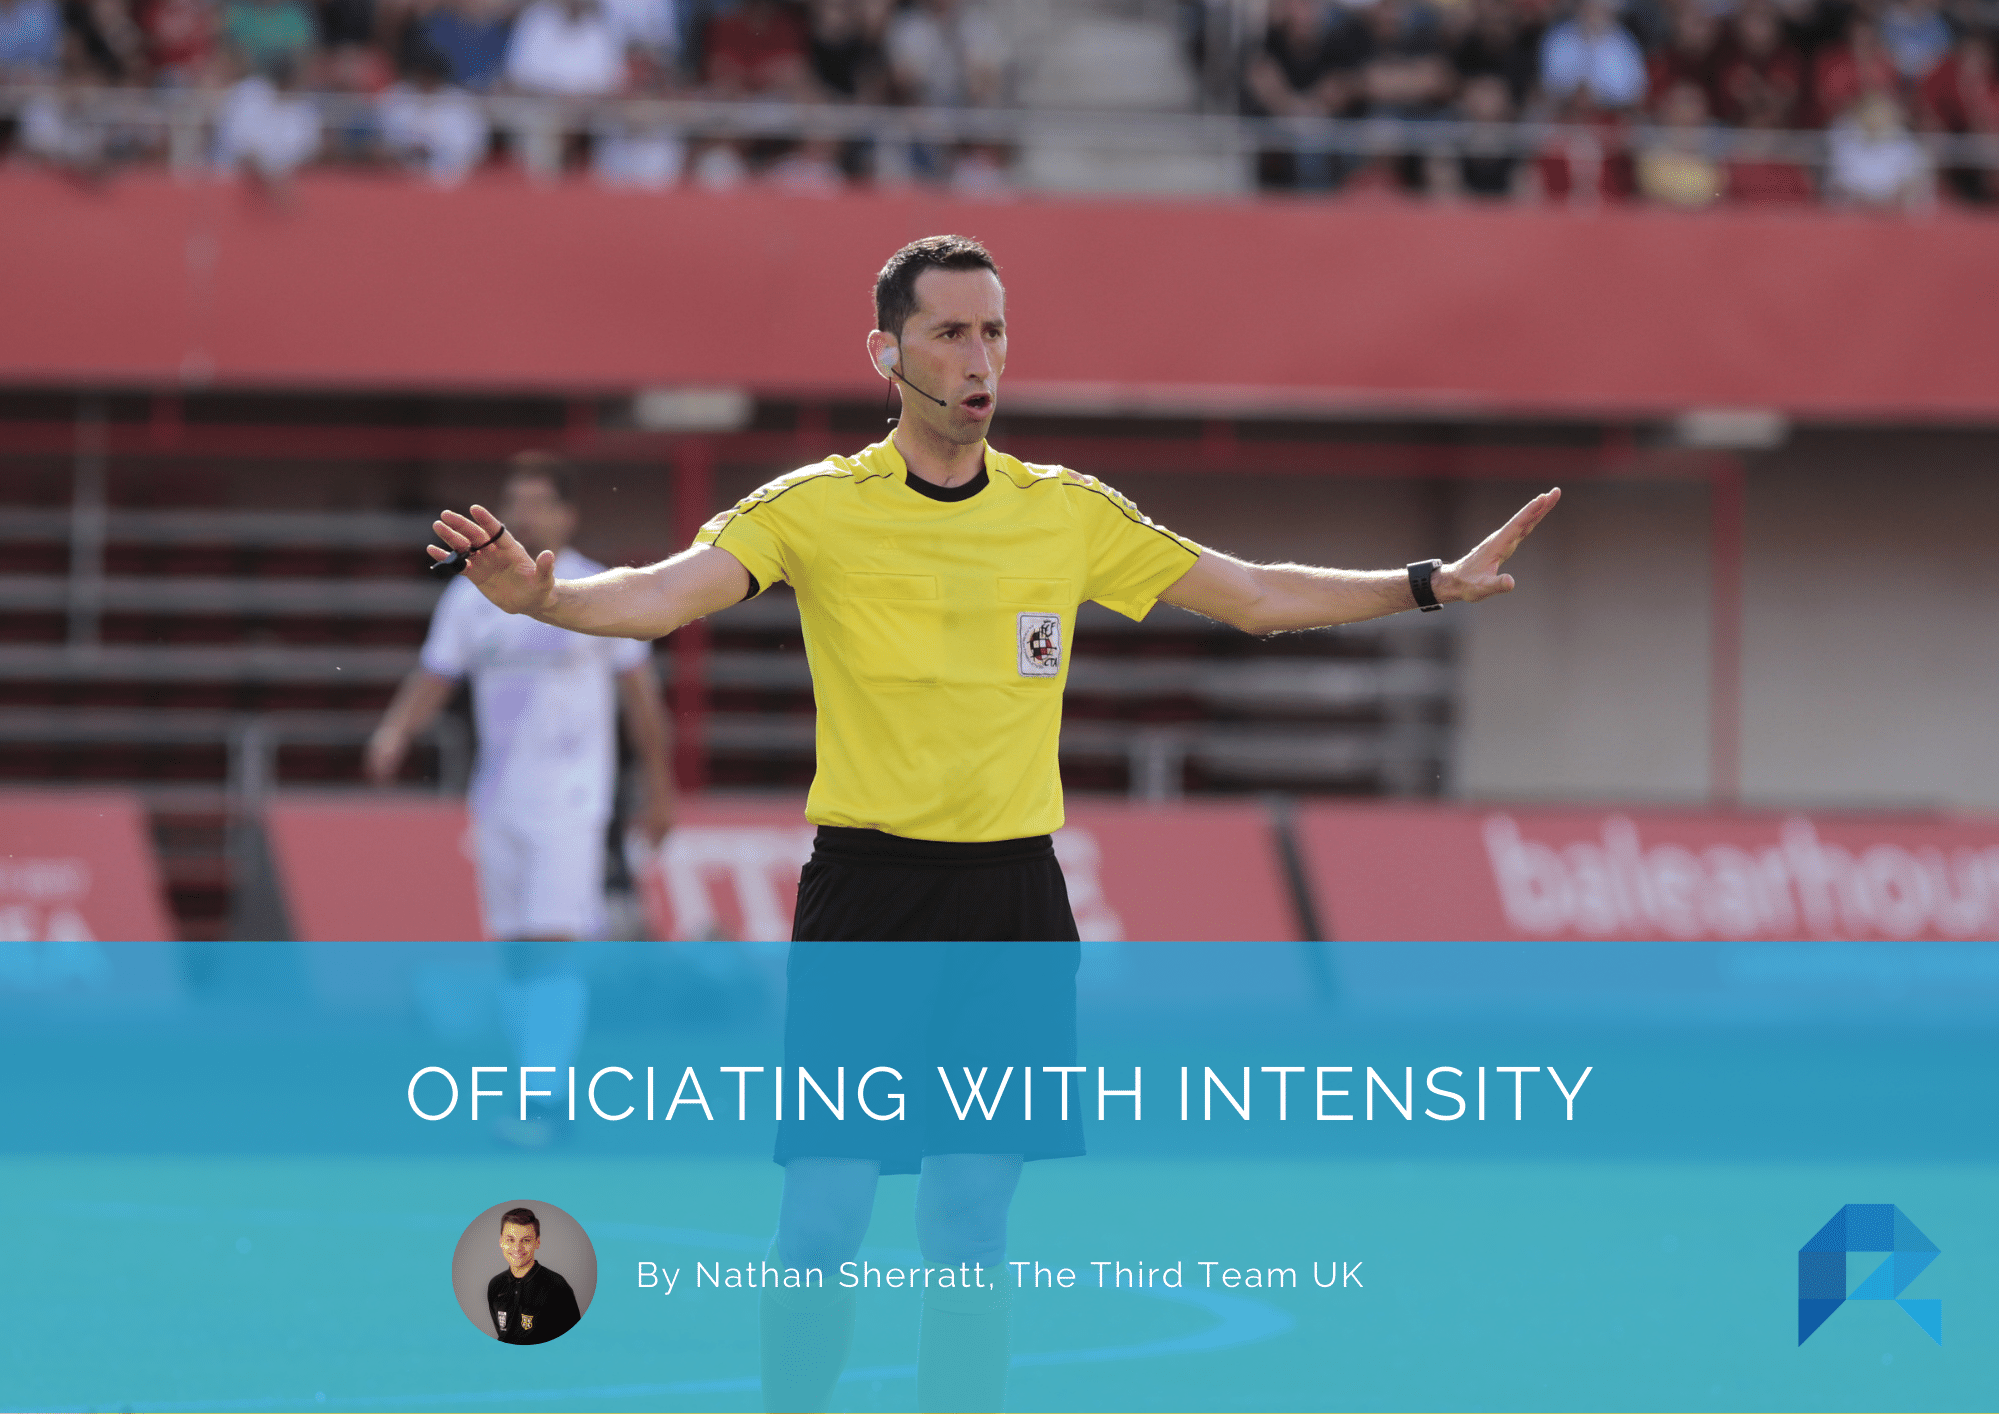 Officiating with Intensity